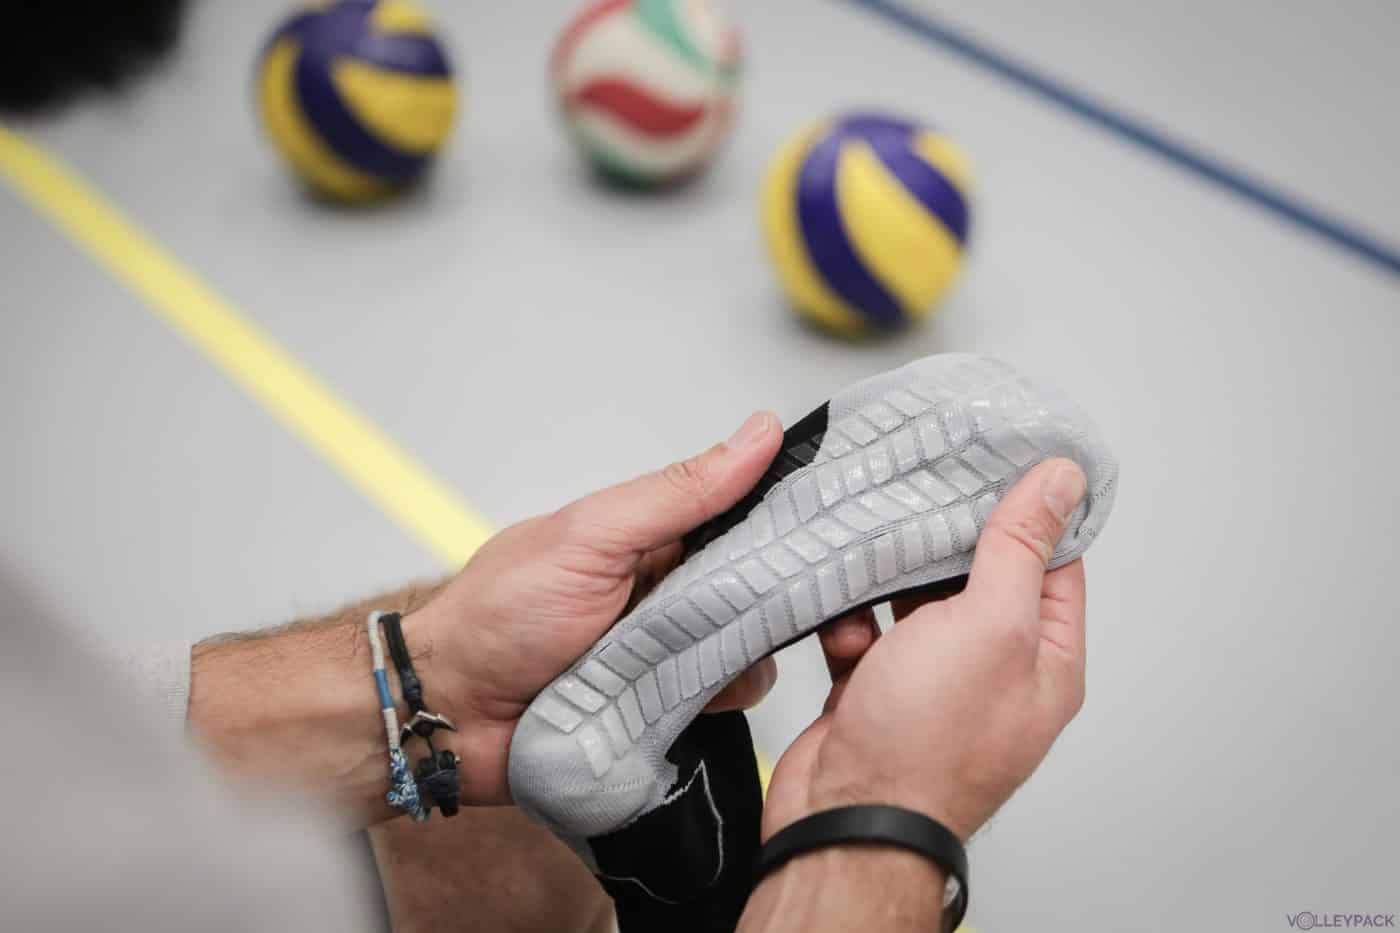 chaussettes-ranna-sport-test-volleypack-4